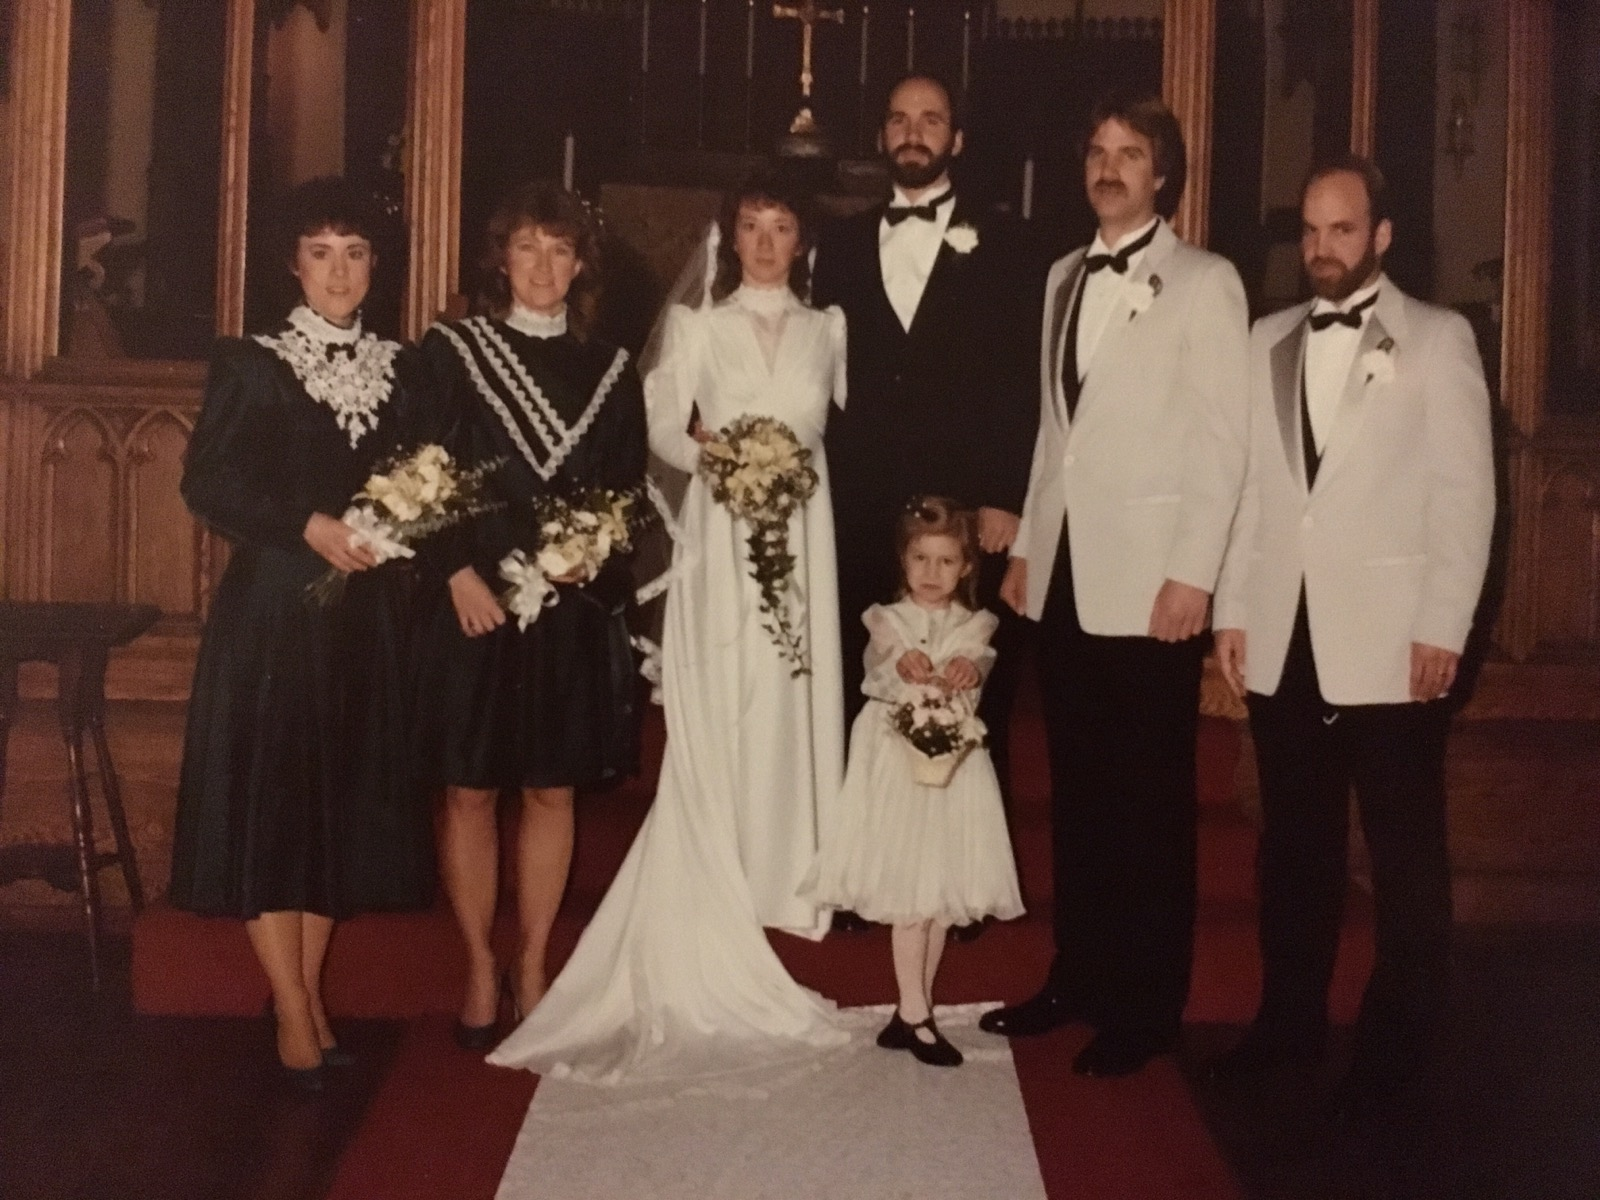 Left to right: my aunt's best friend Lynn, her big sister (my mommy), my beloved Auntie Ellen, me at age 5, my Uncle Dan and his two brothers, Robert and David Pioro.